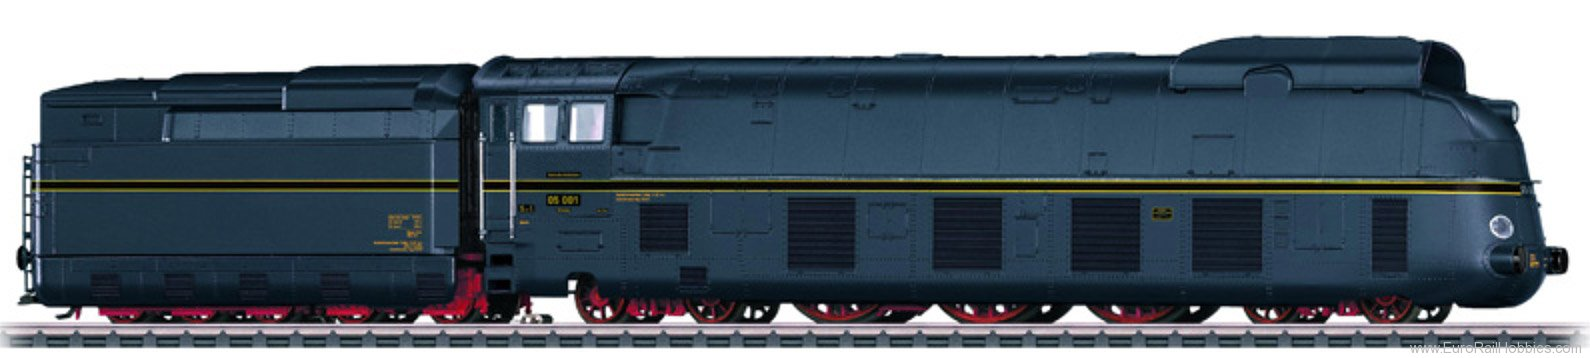 Marklin 39058 Marklin HO 2018 Toyfair Locomotive - DRG BR05